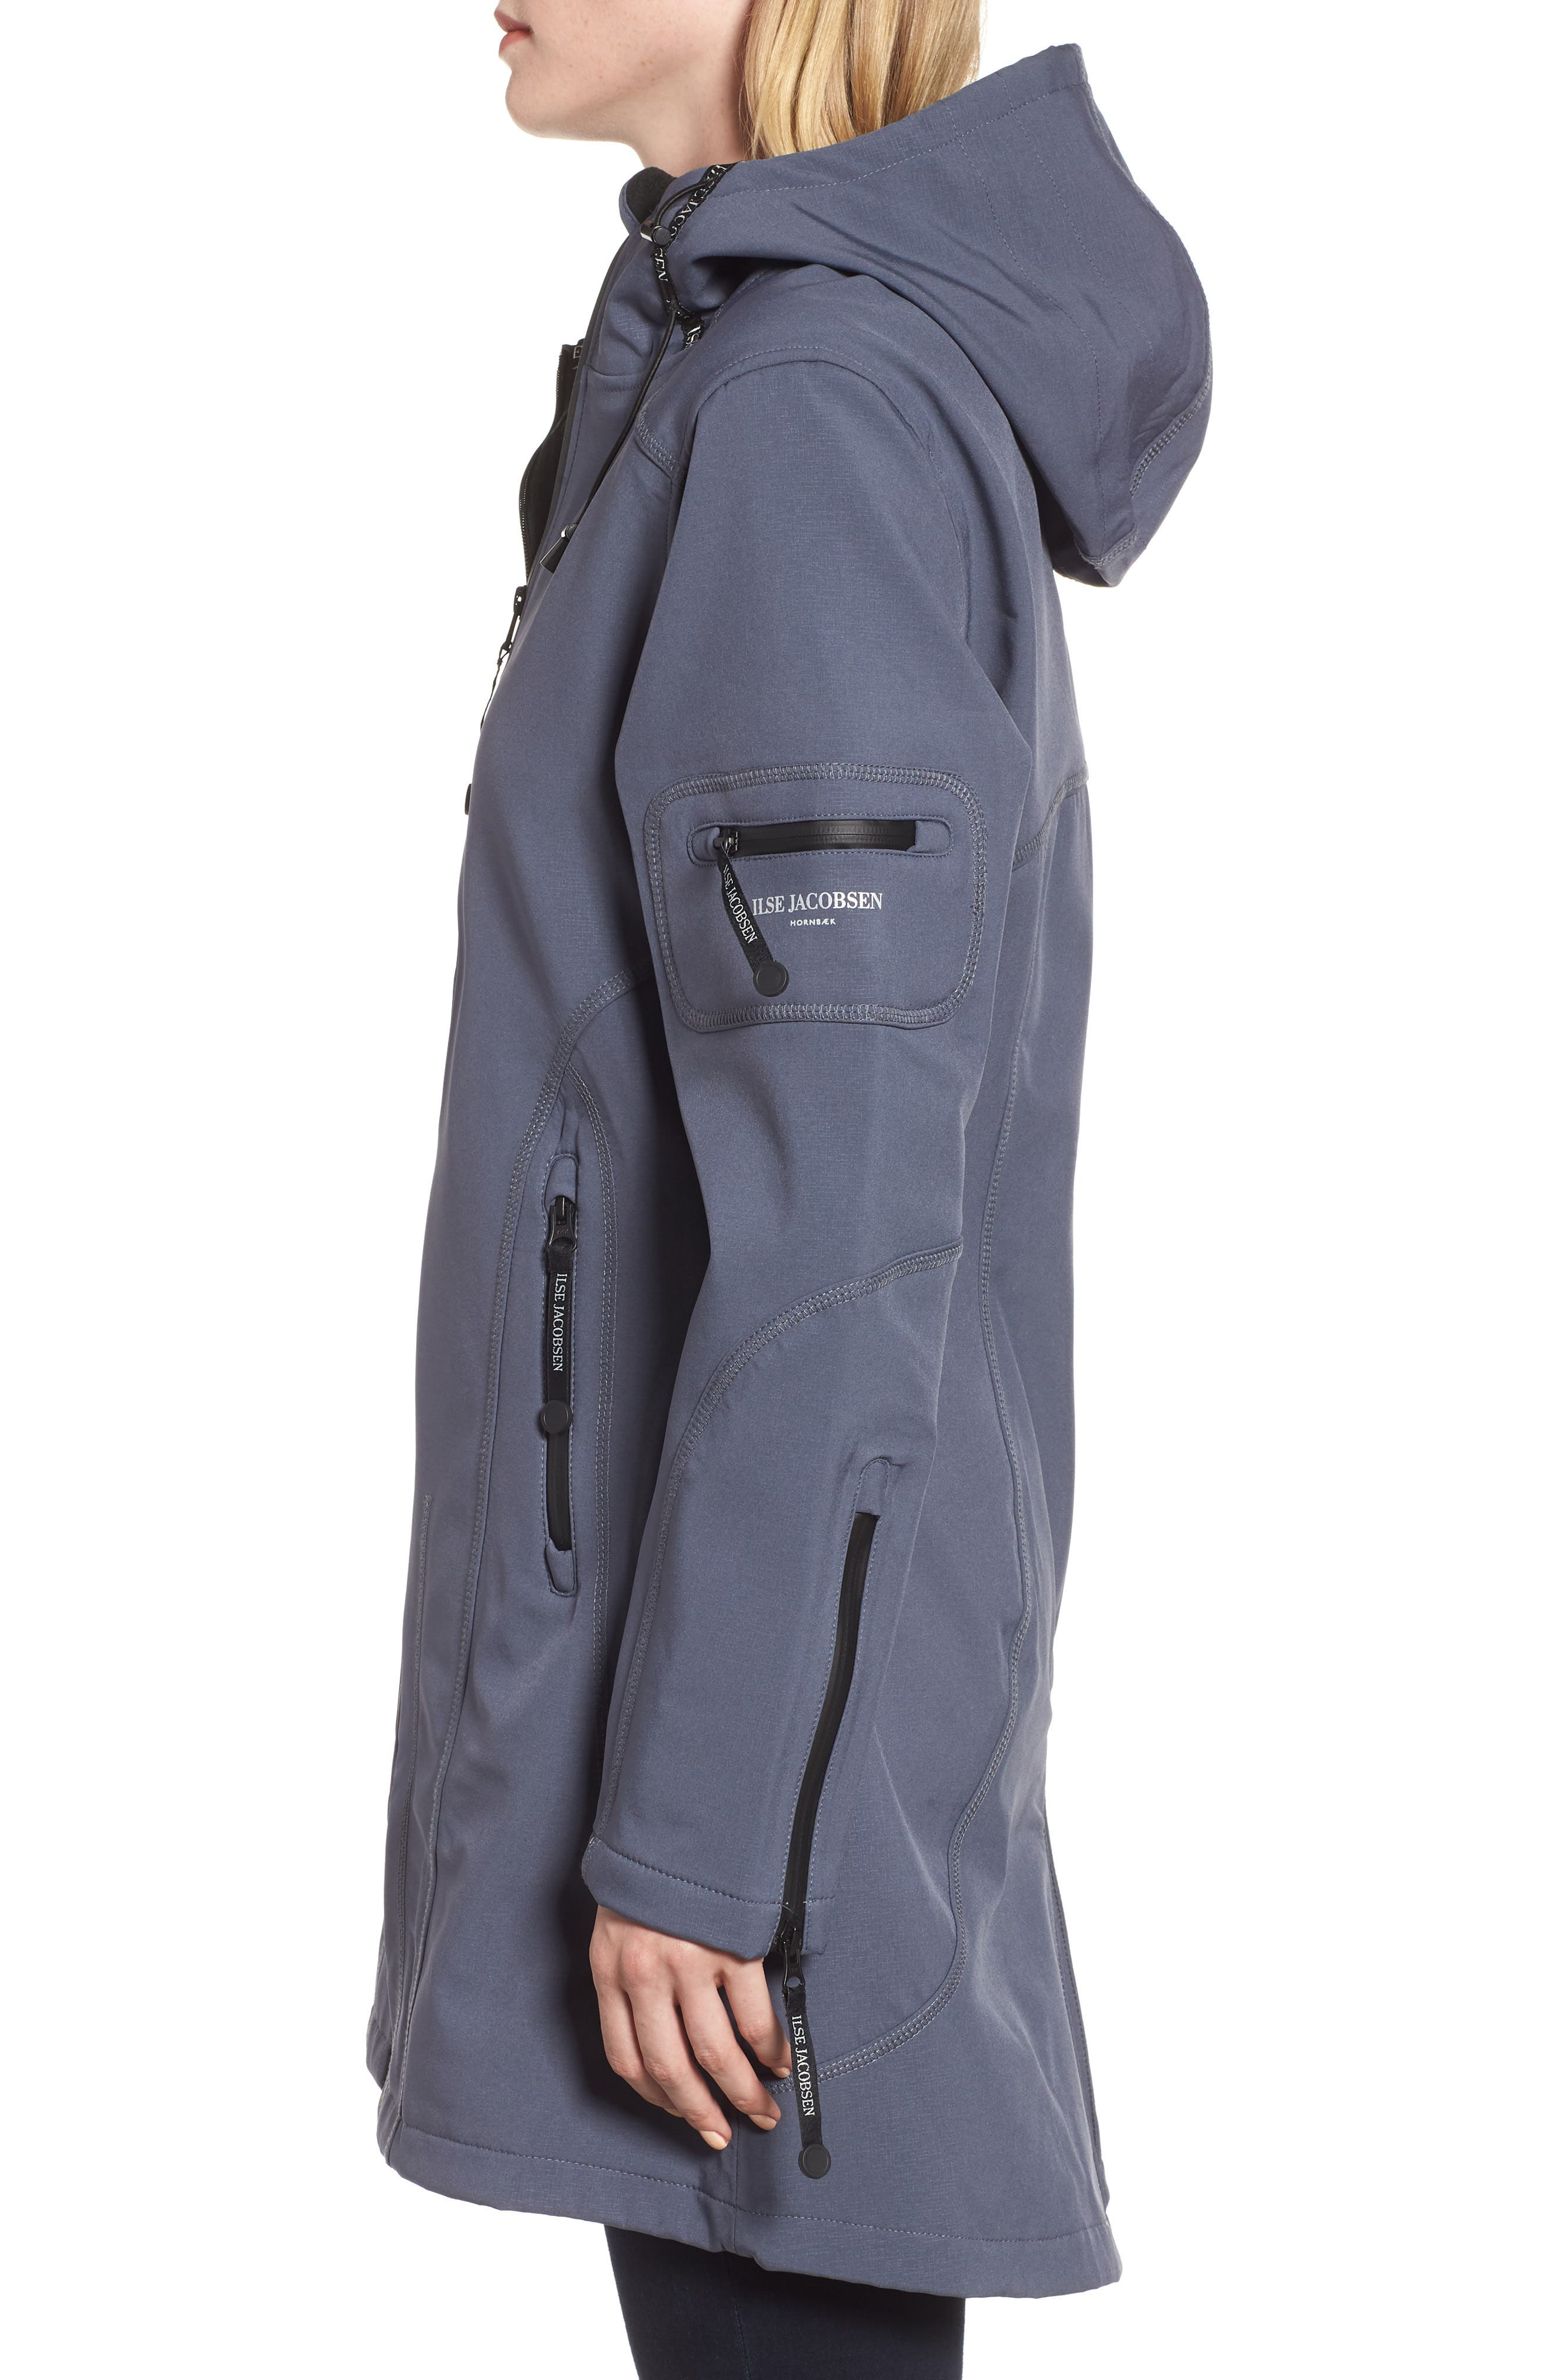 Rain 7 Hooded Water Resistant Coat,                             Alternate thumbnail 3, color,                             BLUE GRAYNESS